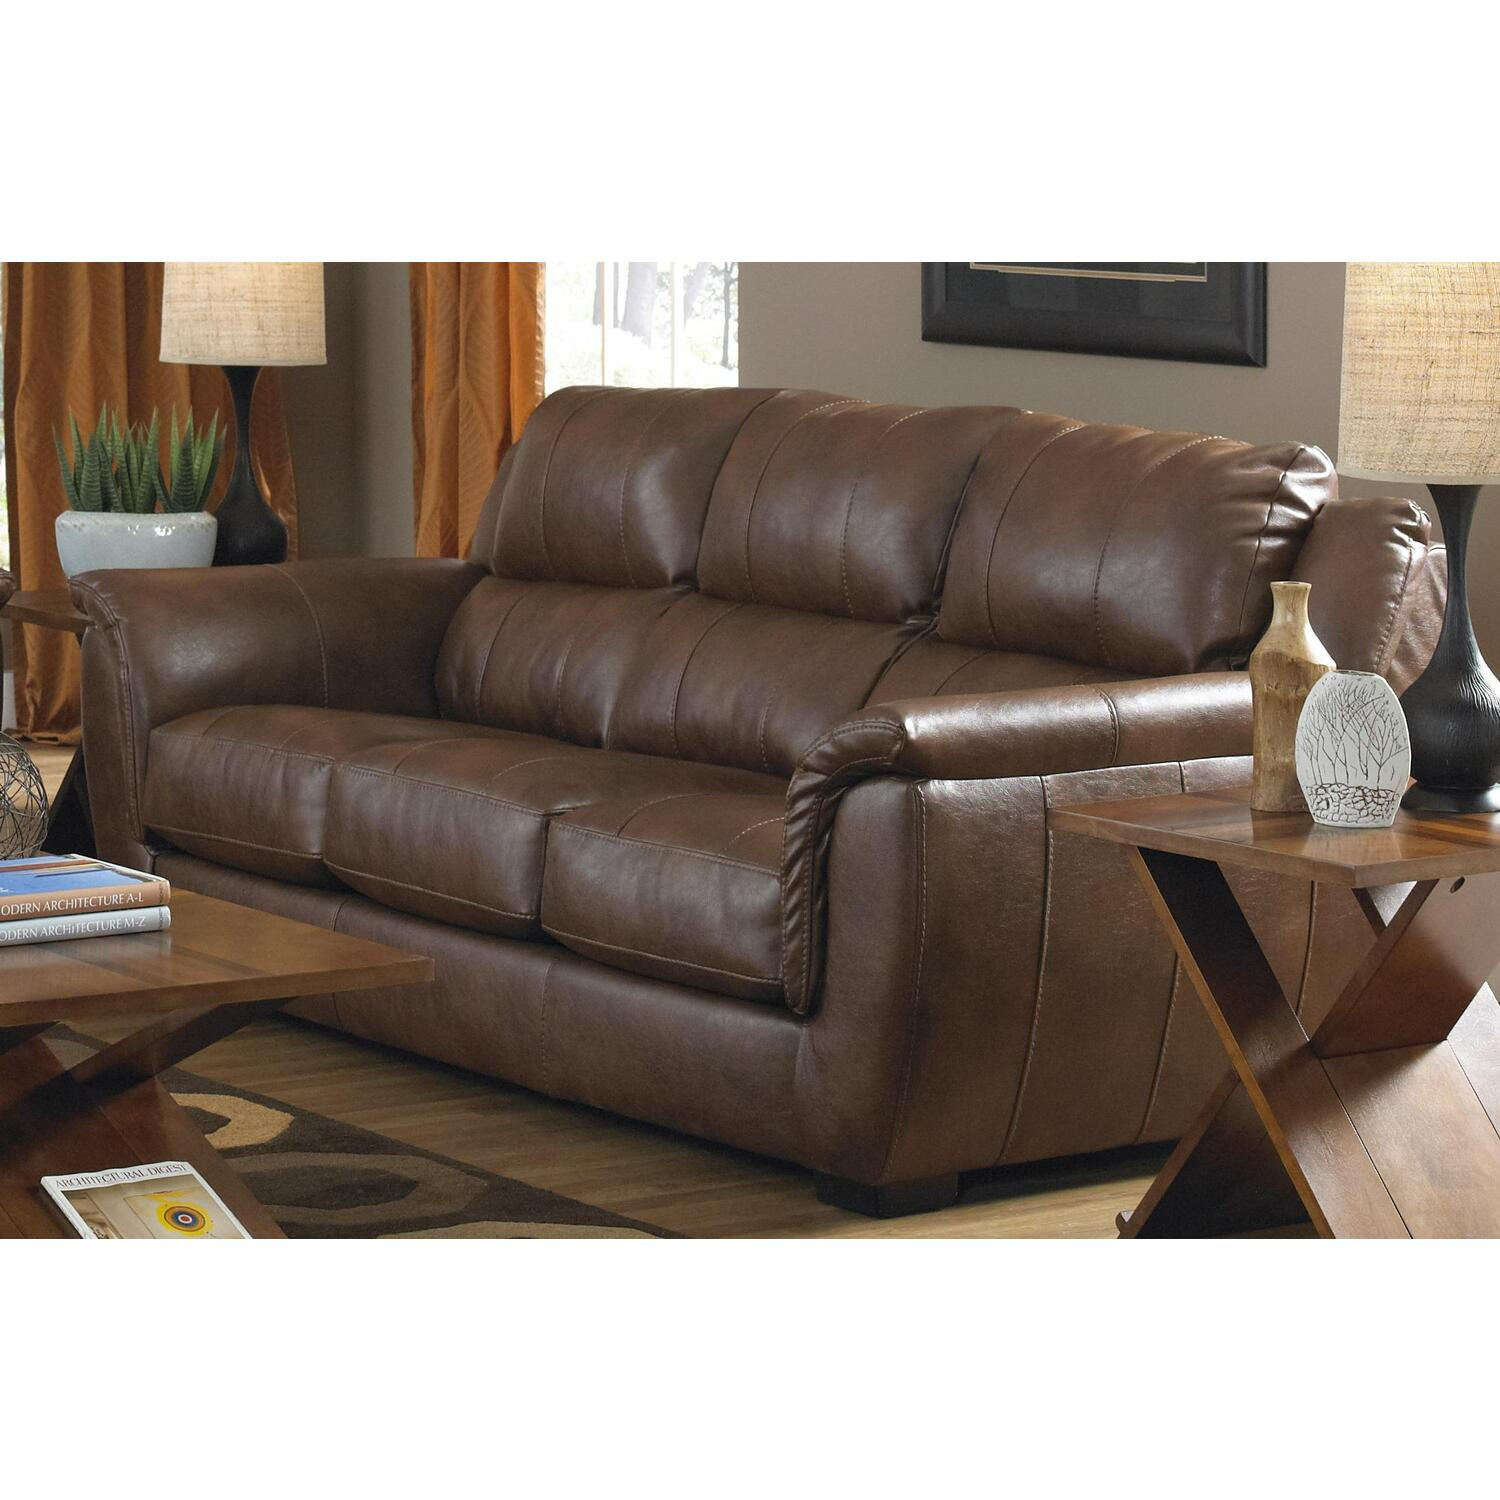 verona leather sofa reviews george nelson sling jackson furniture by oj commerce 4490